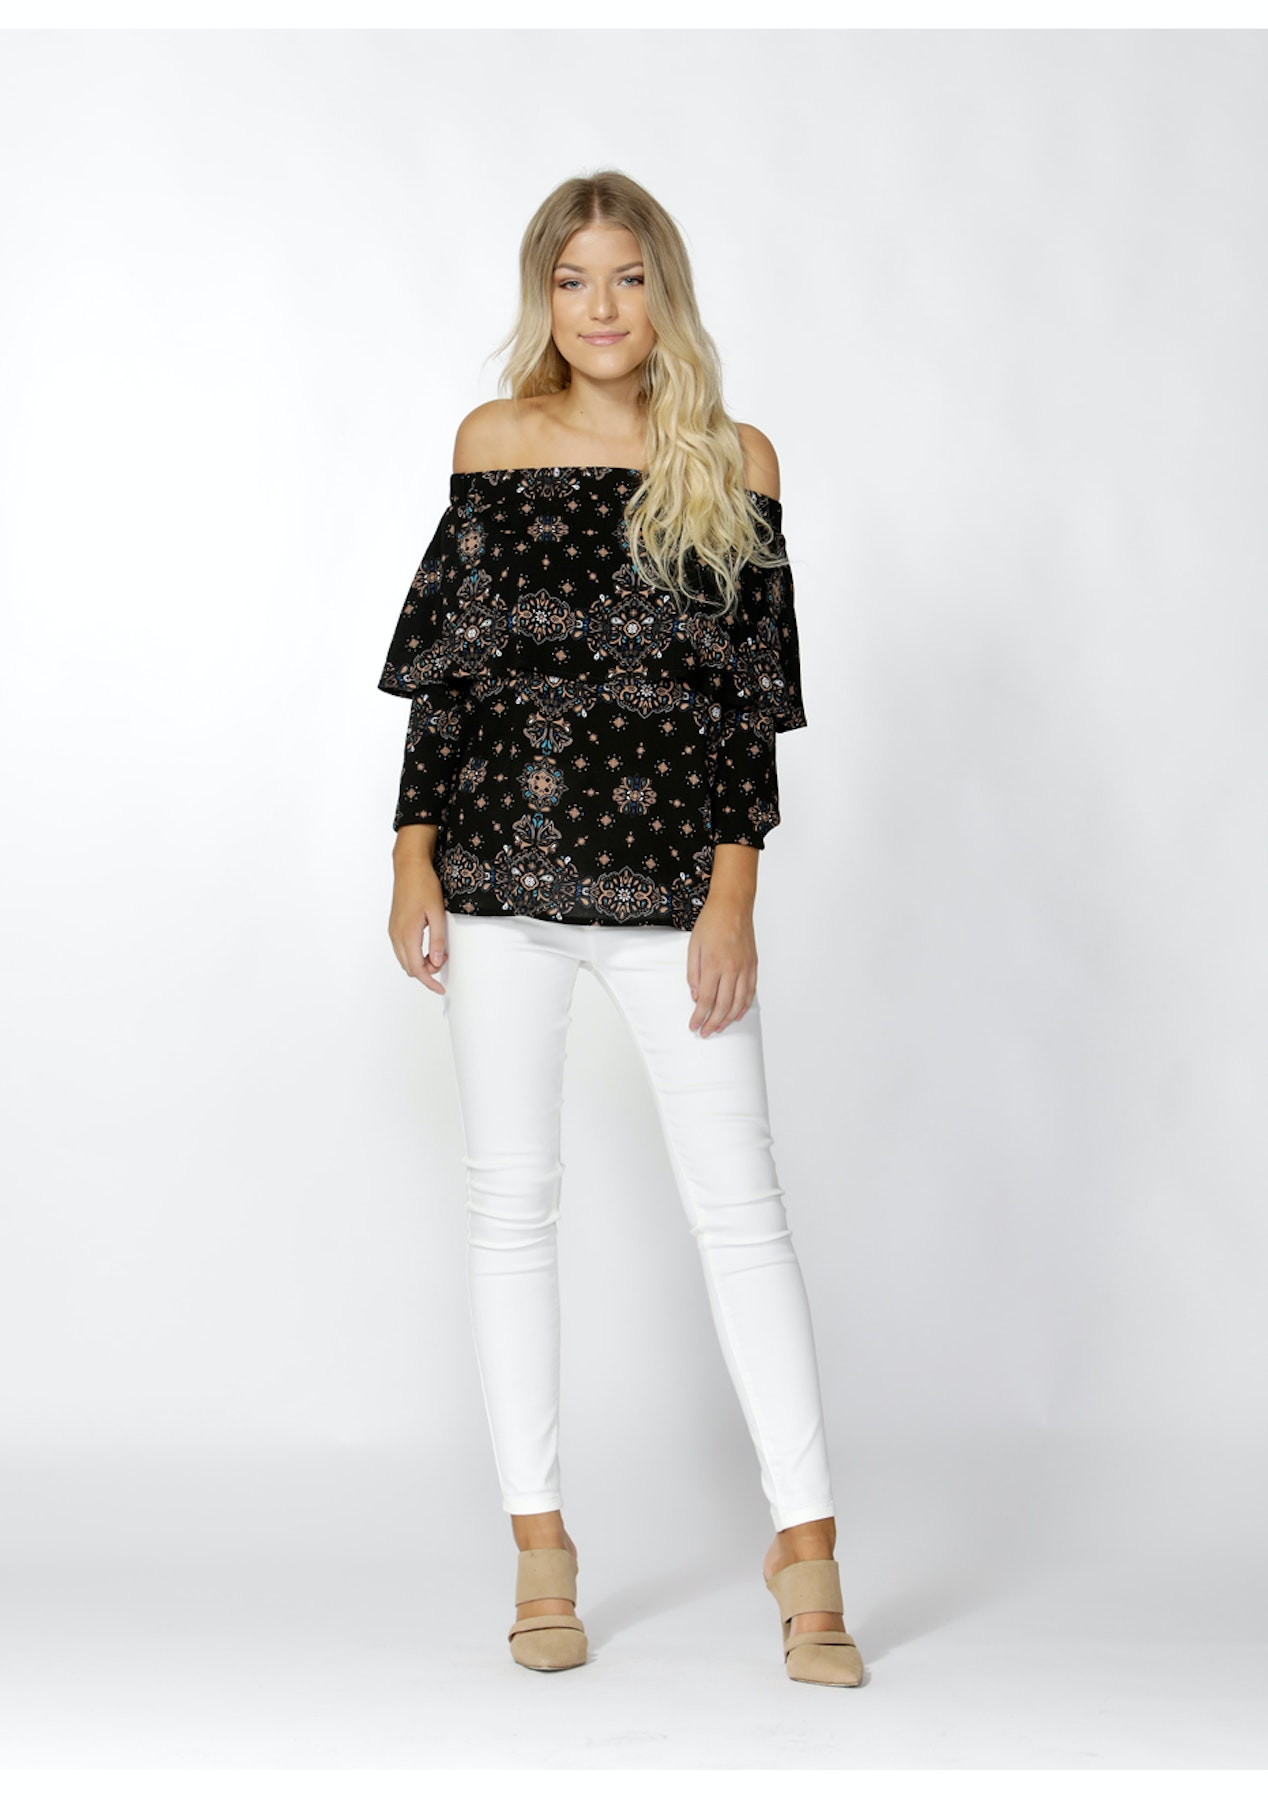 af00d498a9efe3 Sass - Cicley Ruffle Overlay Blouse - Cicley Print - Under $20 Womens -  Onceit